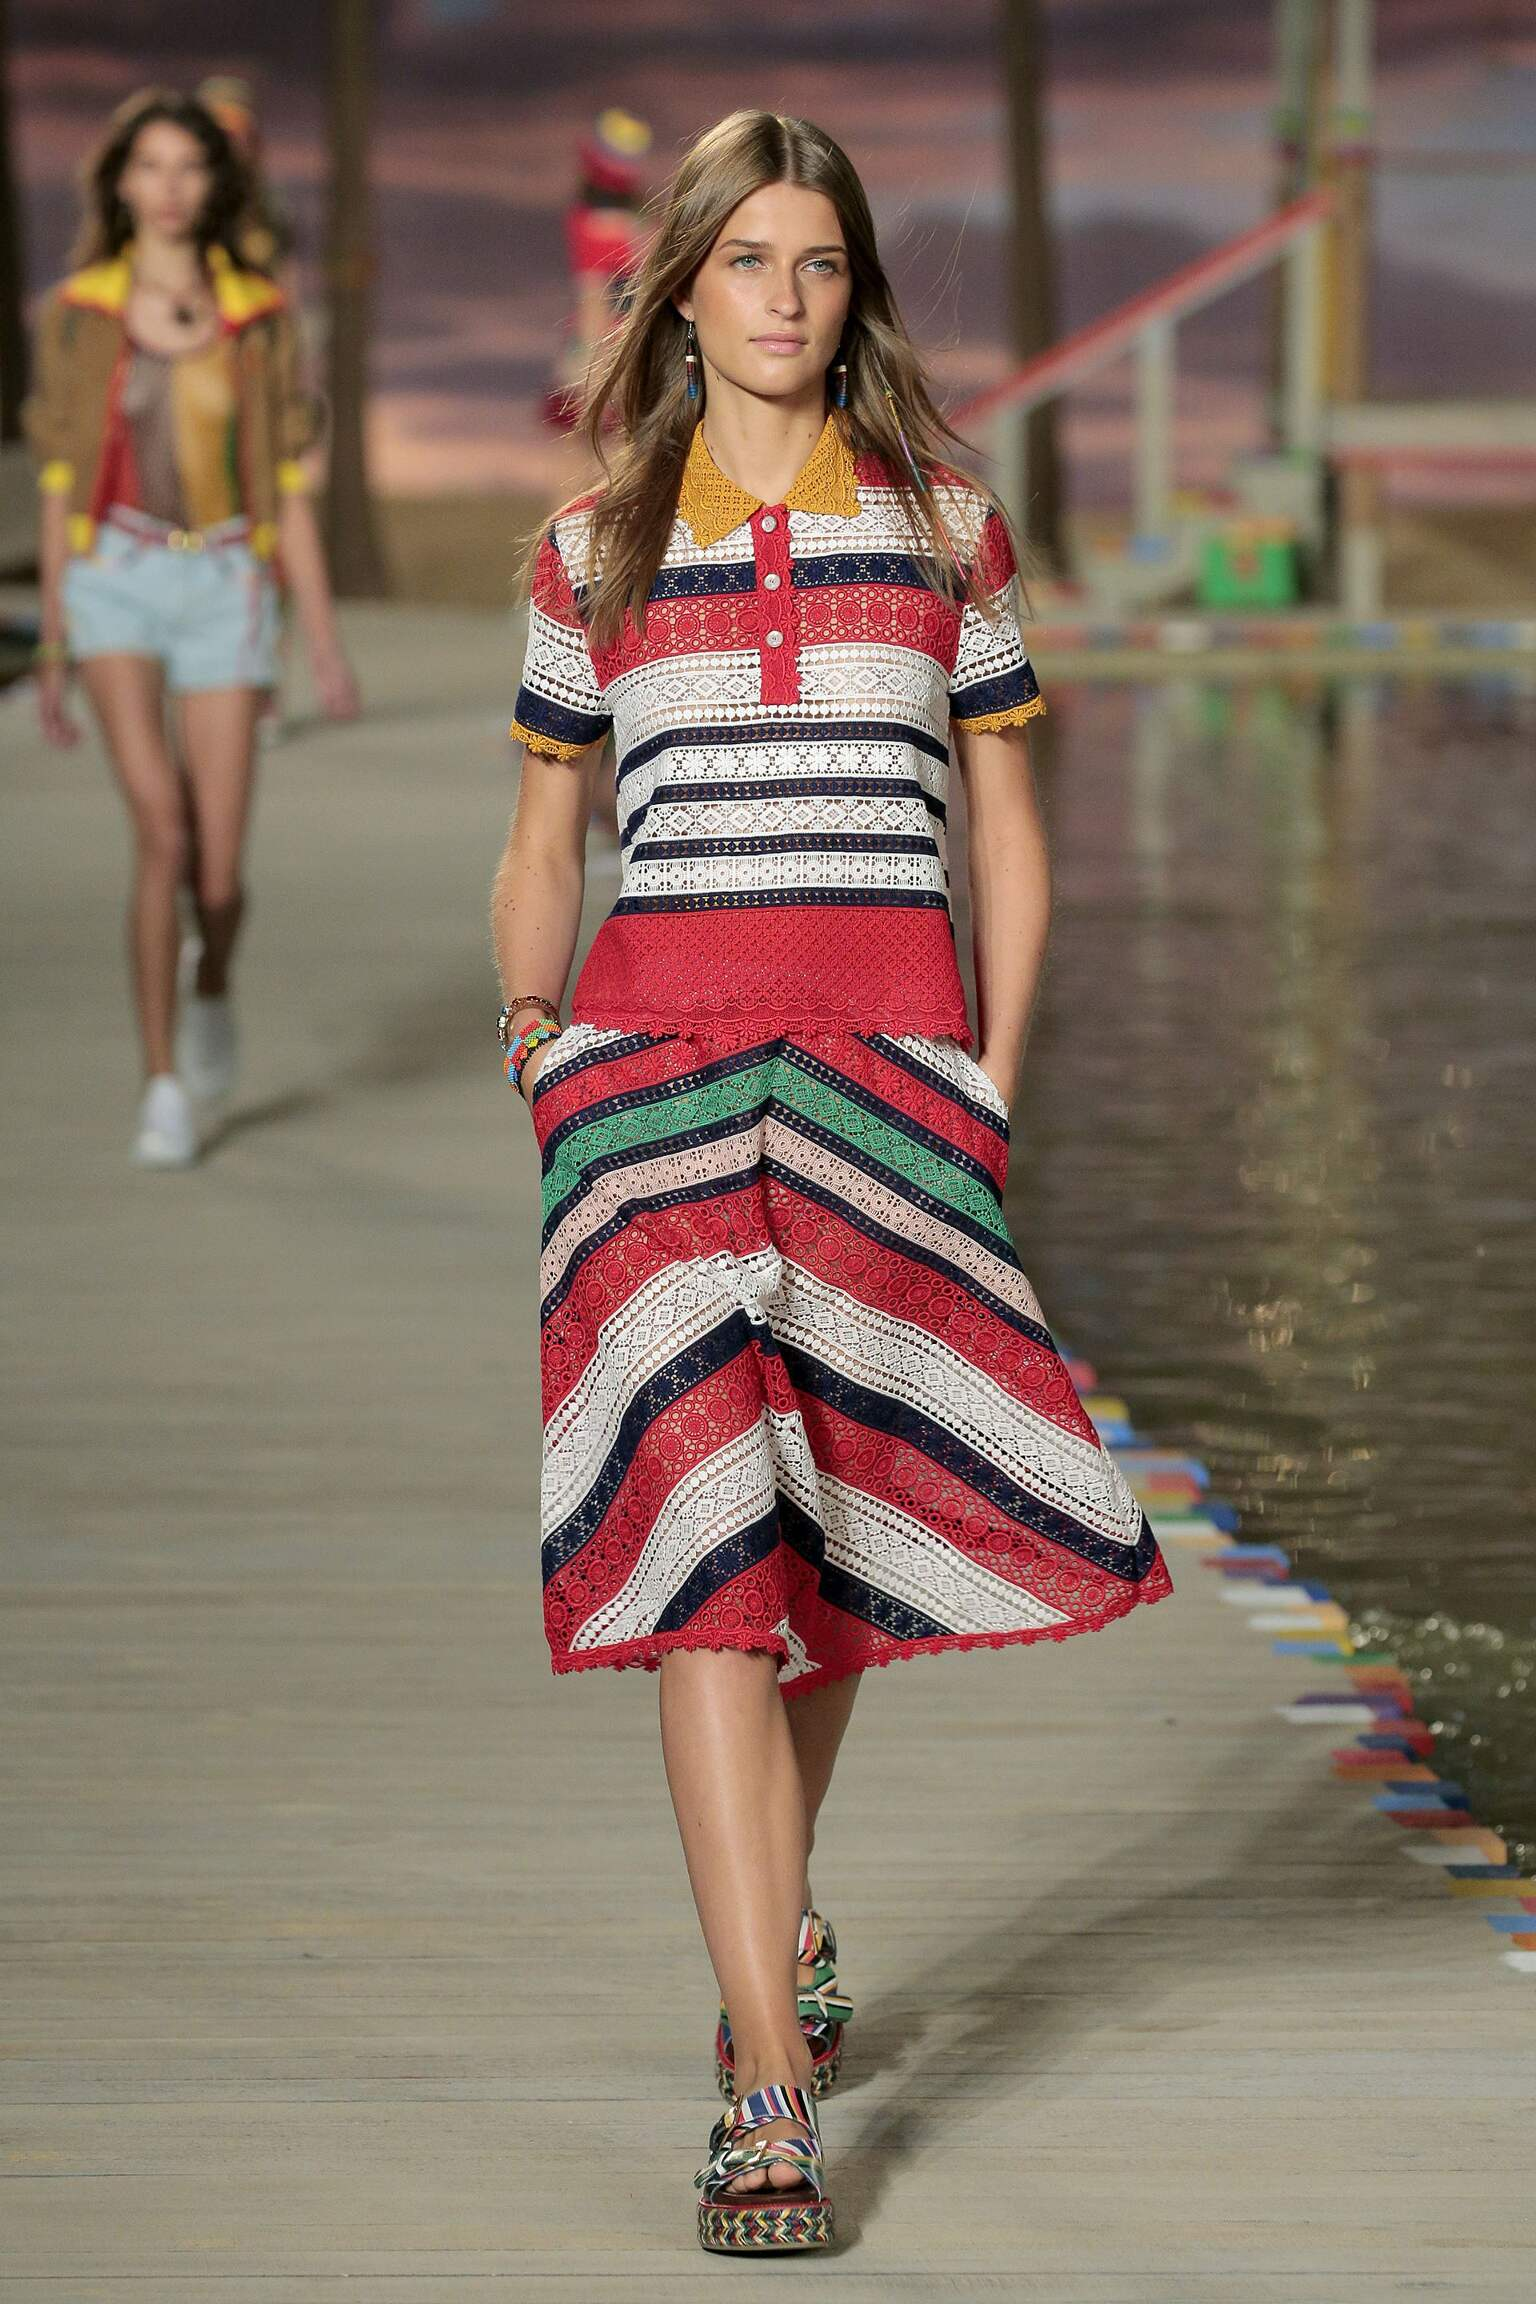 Tommy Hilfiger Summer 2016 Catwalk